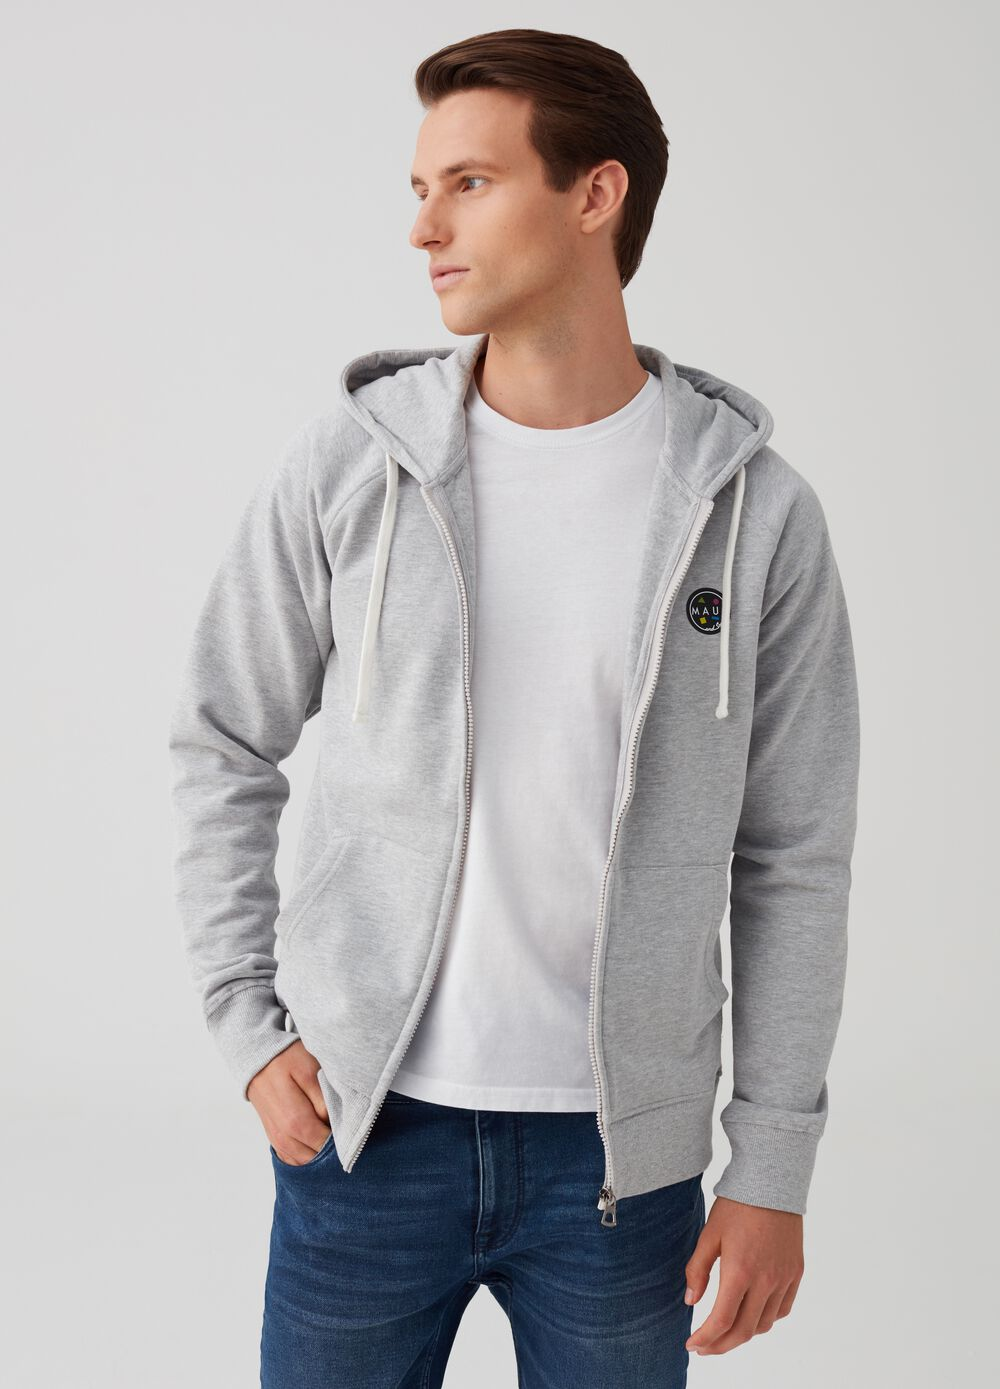 Sweatshirt with hood and zip by Maui and Sons